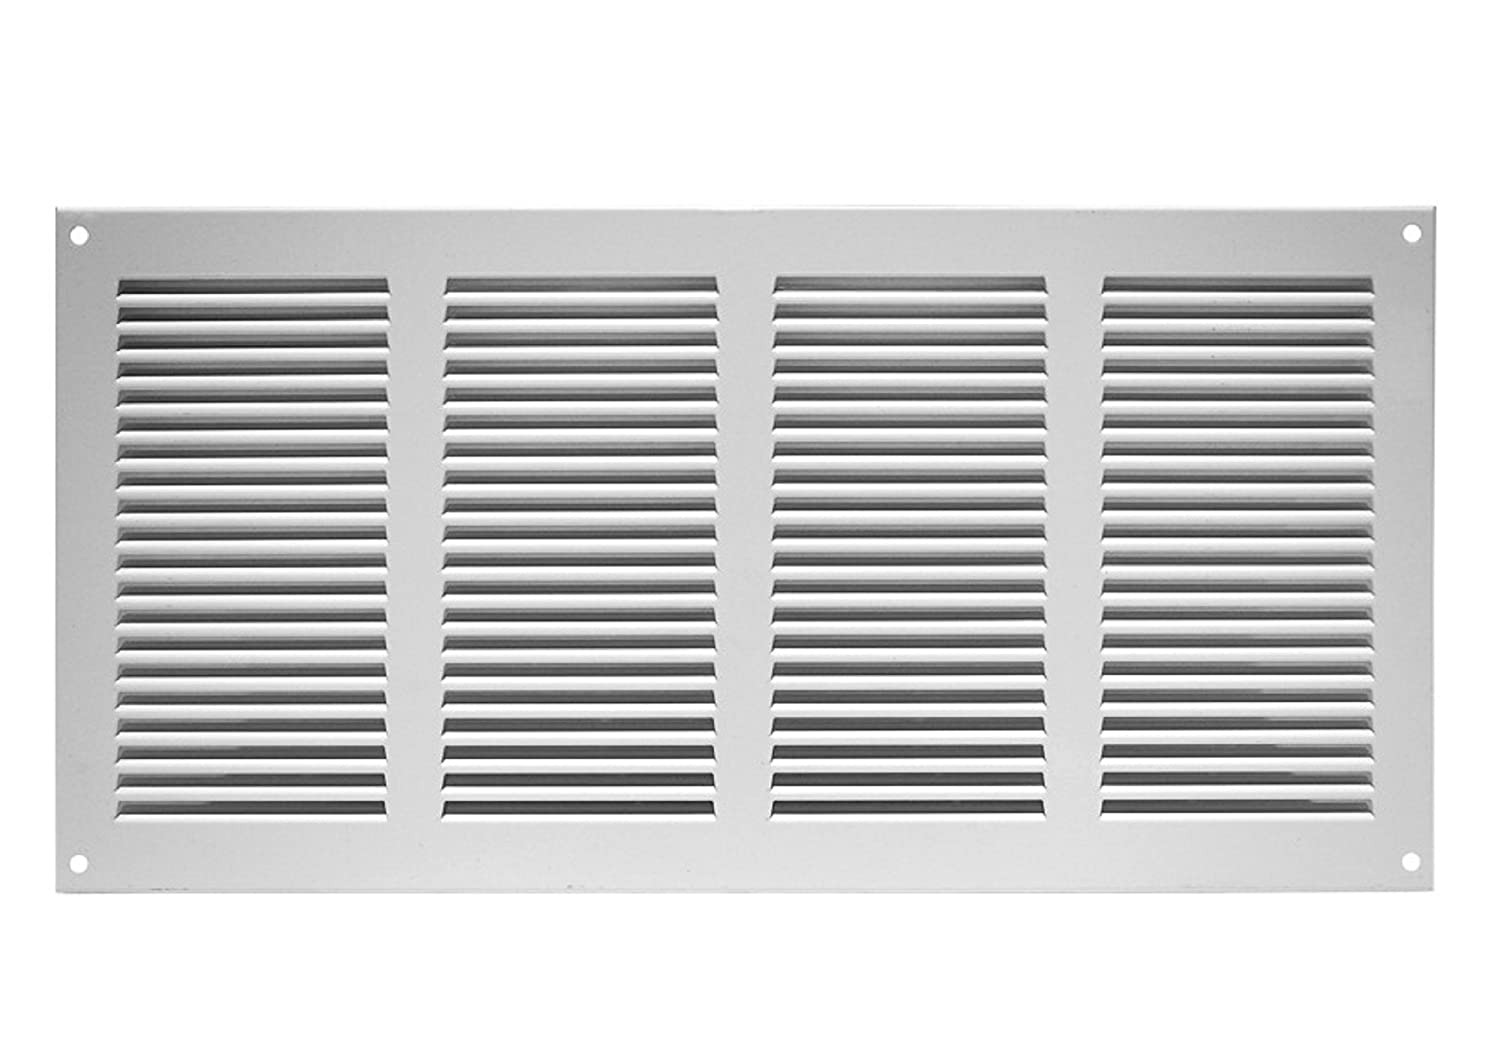 Air Vent Grille Cover 400 x 200mm (15 x 8inch) White Ventilation Cover, Metal, with Insect Protection , mr4020 Europlast